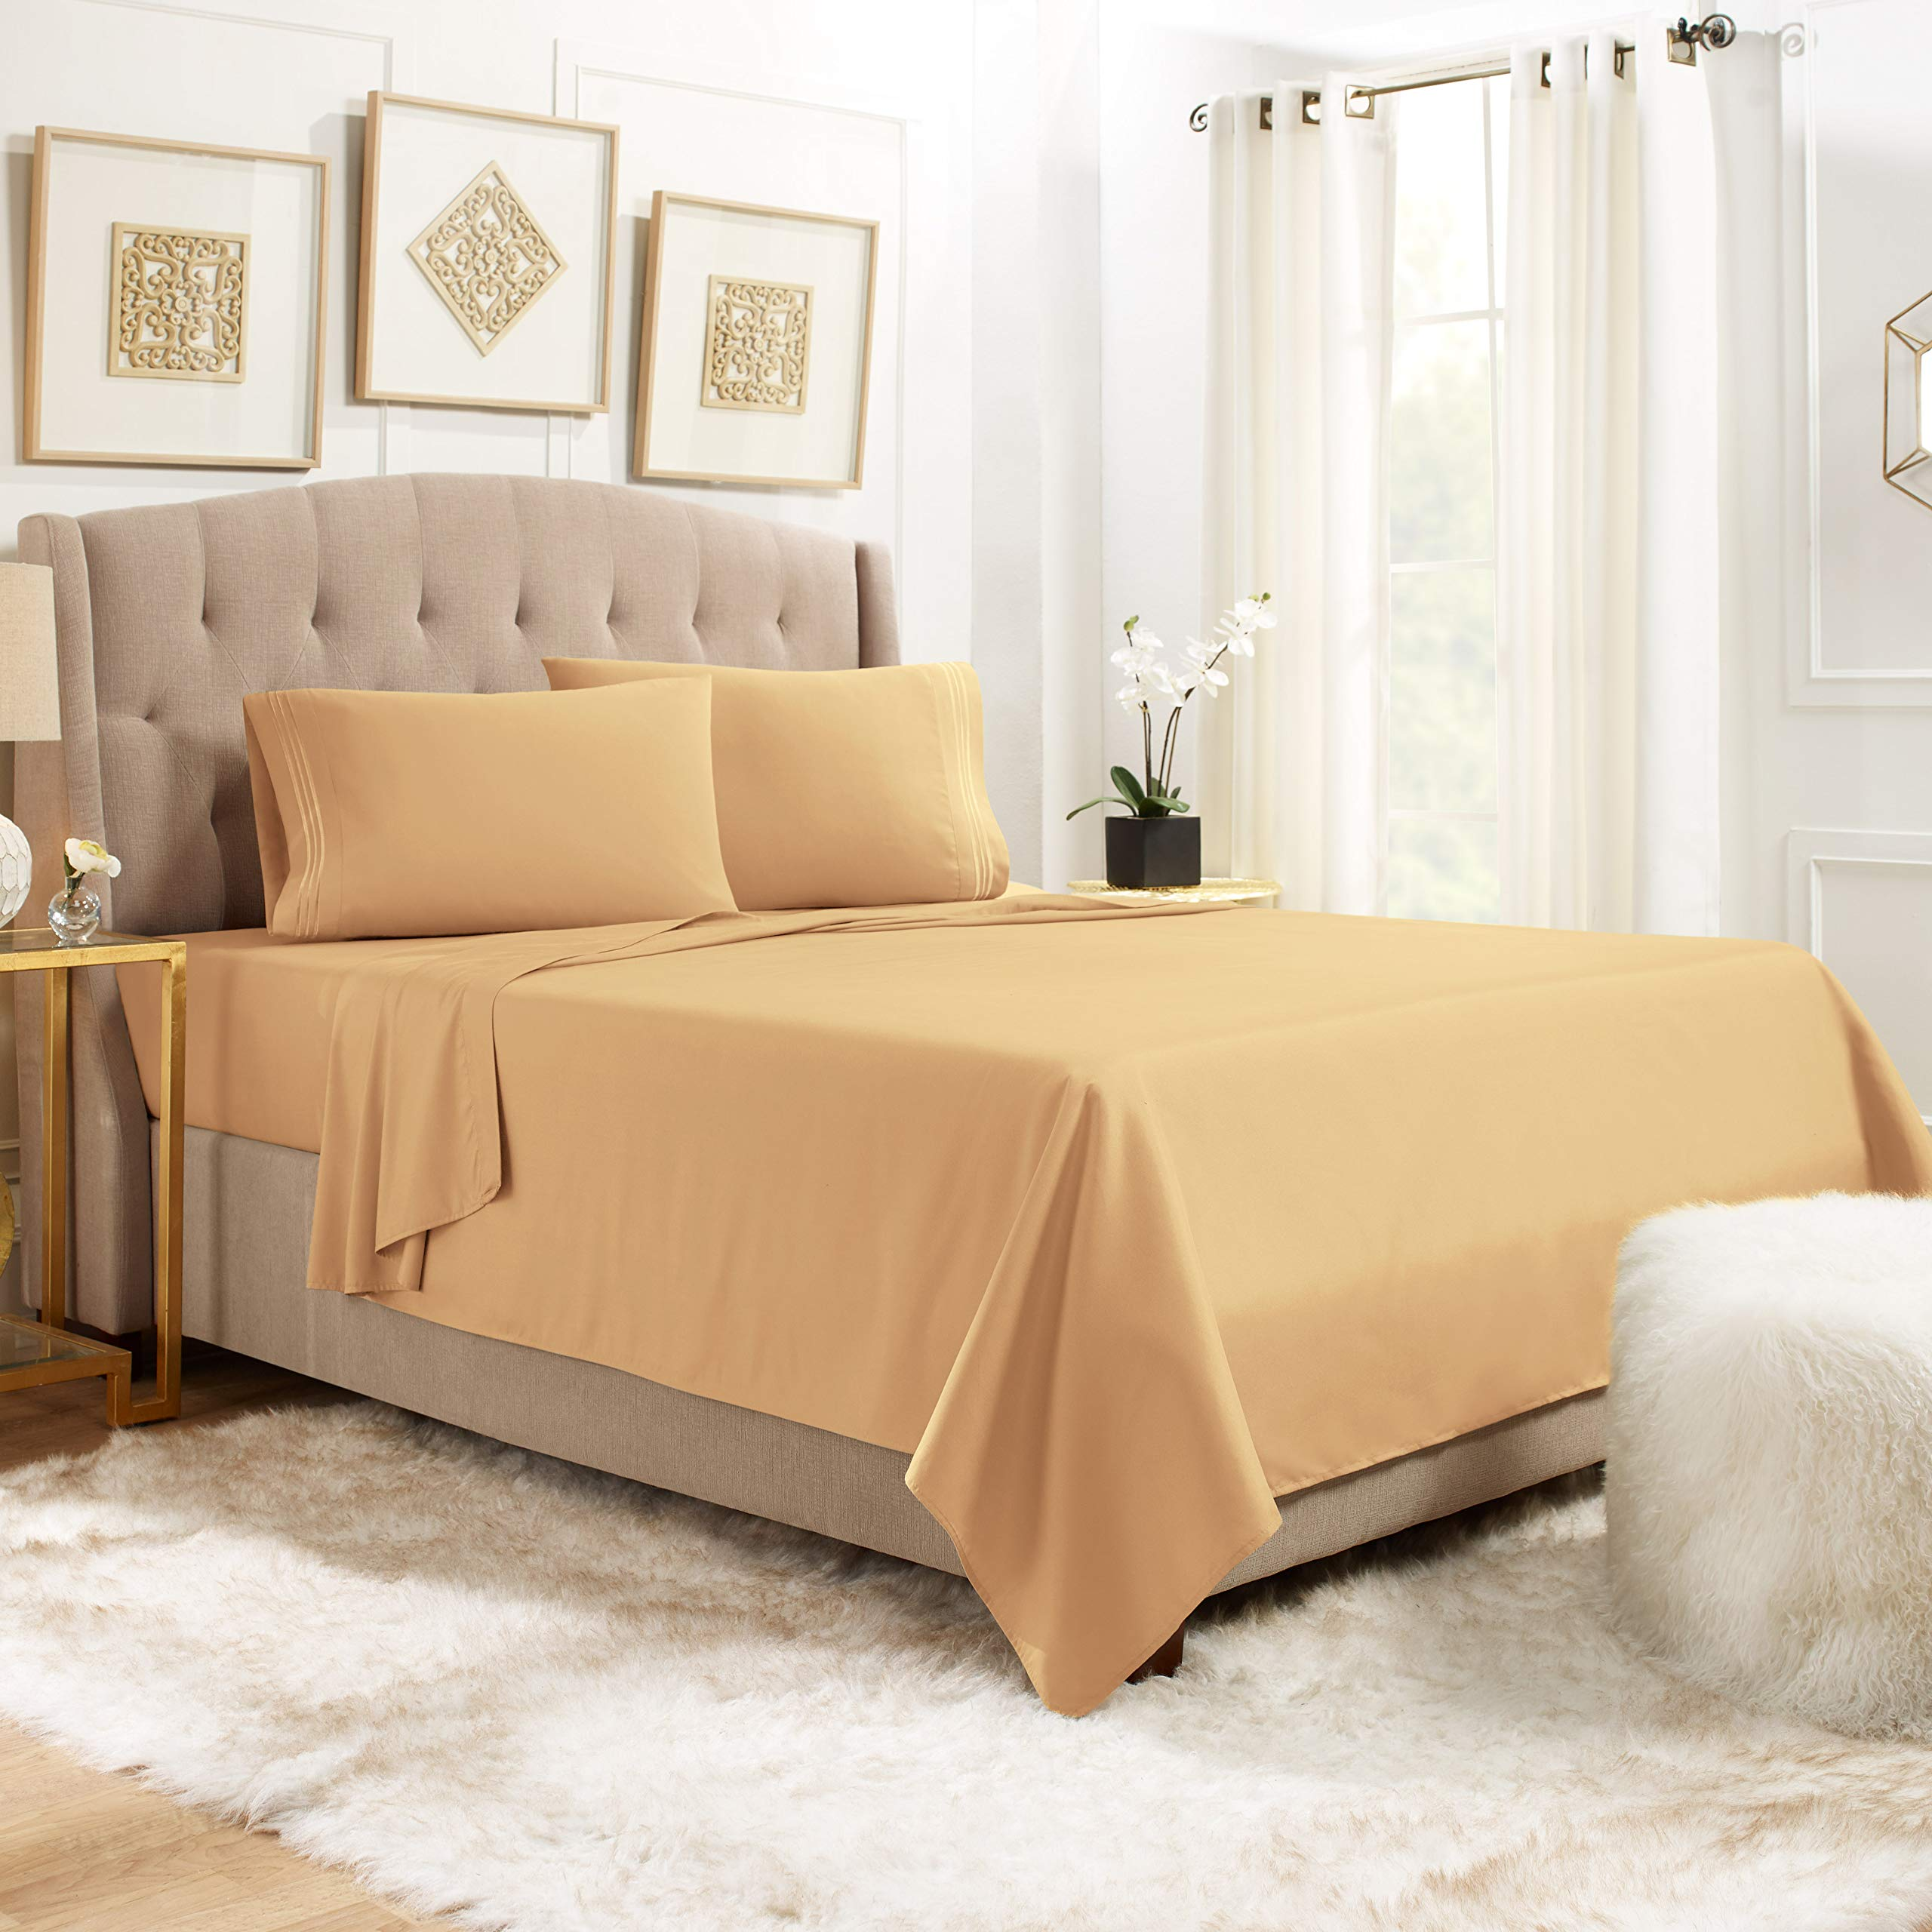 """Empyrean Bedding 14"""" - 16"""" Deep Pocket Fitted Sheet 3 Piece Set - Hotel Luxury Soft Double Brushed Microfiber Top Sheet - Wrinkle Free Fitted Bed Sheet, Flat Sheet and 1 Pillow Case - Twin, Camel"""